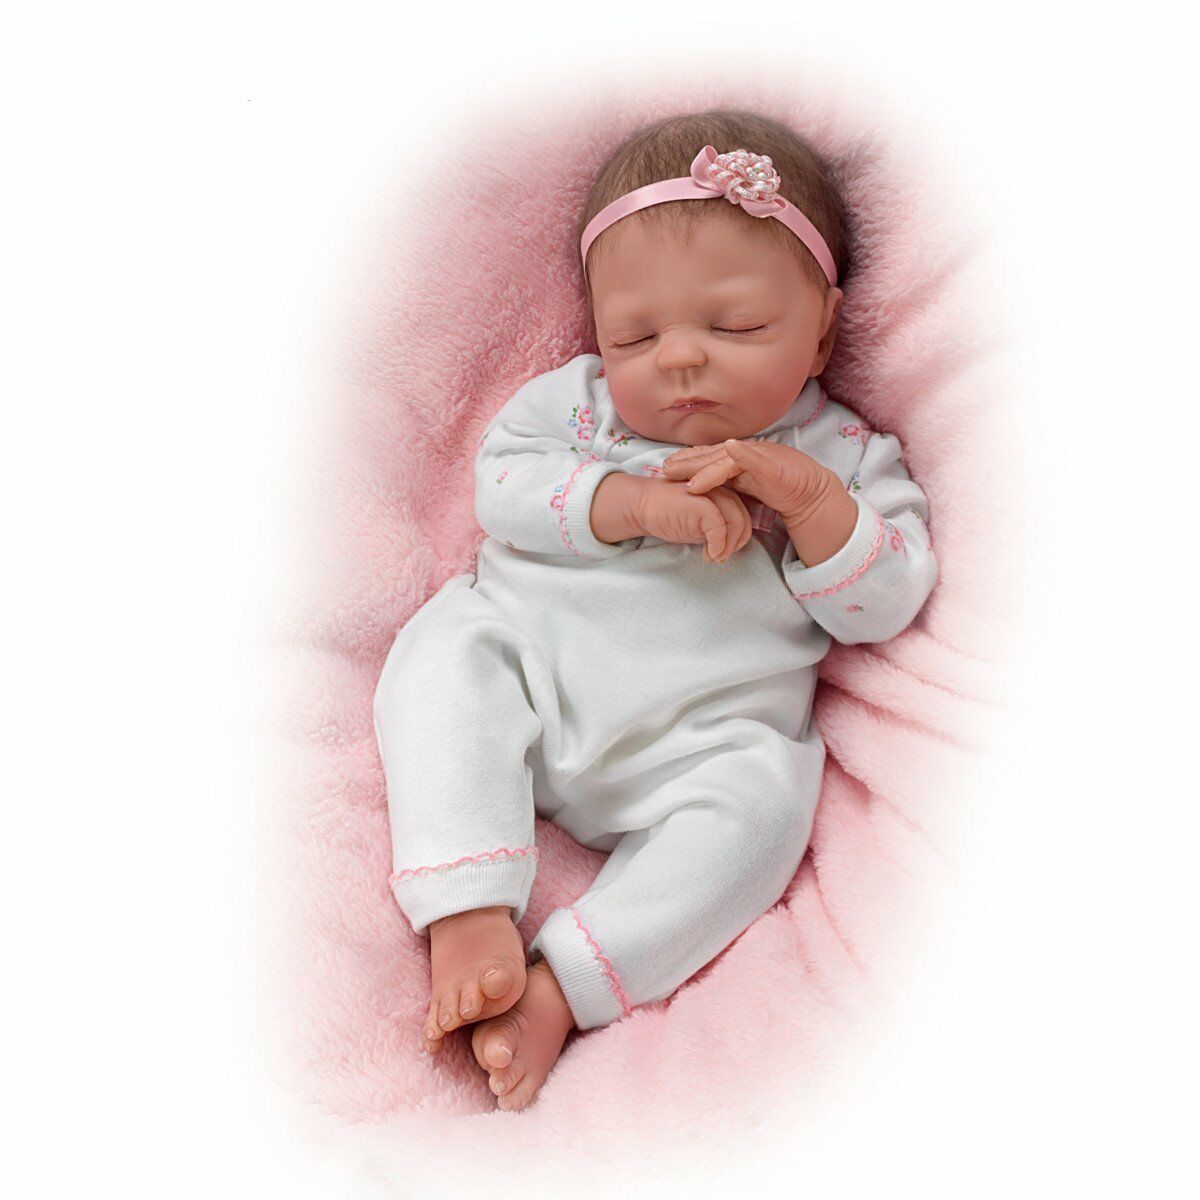 Cuddle caitlyn ashton drake doll by violet parker 17 for The ashton